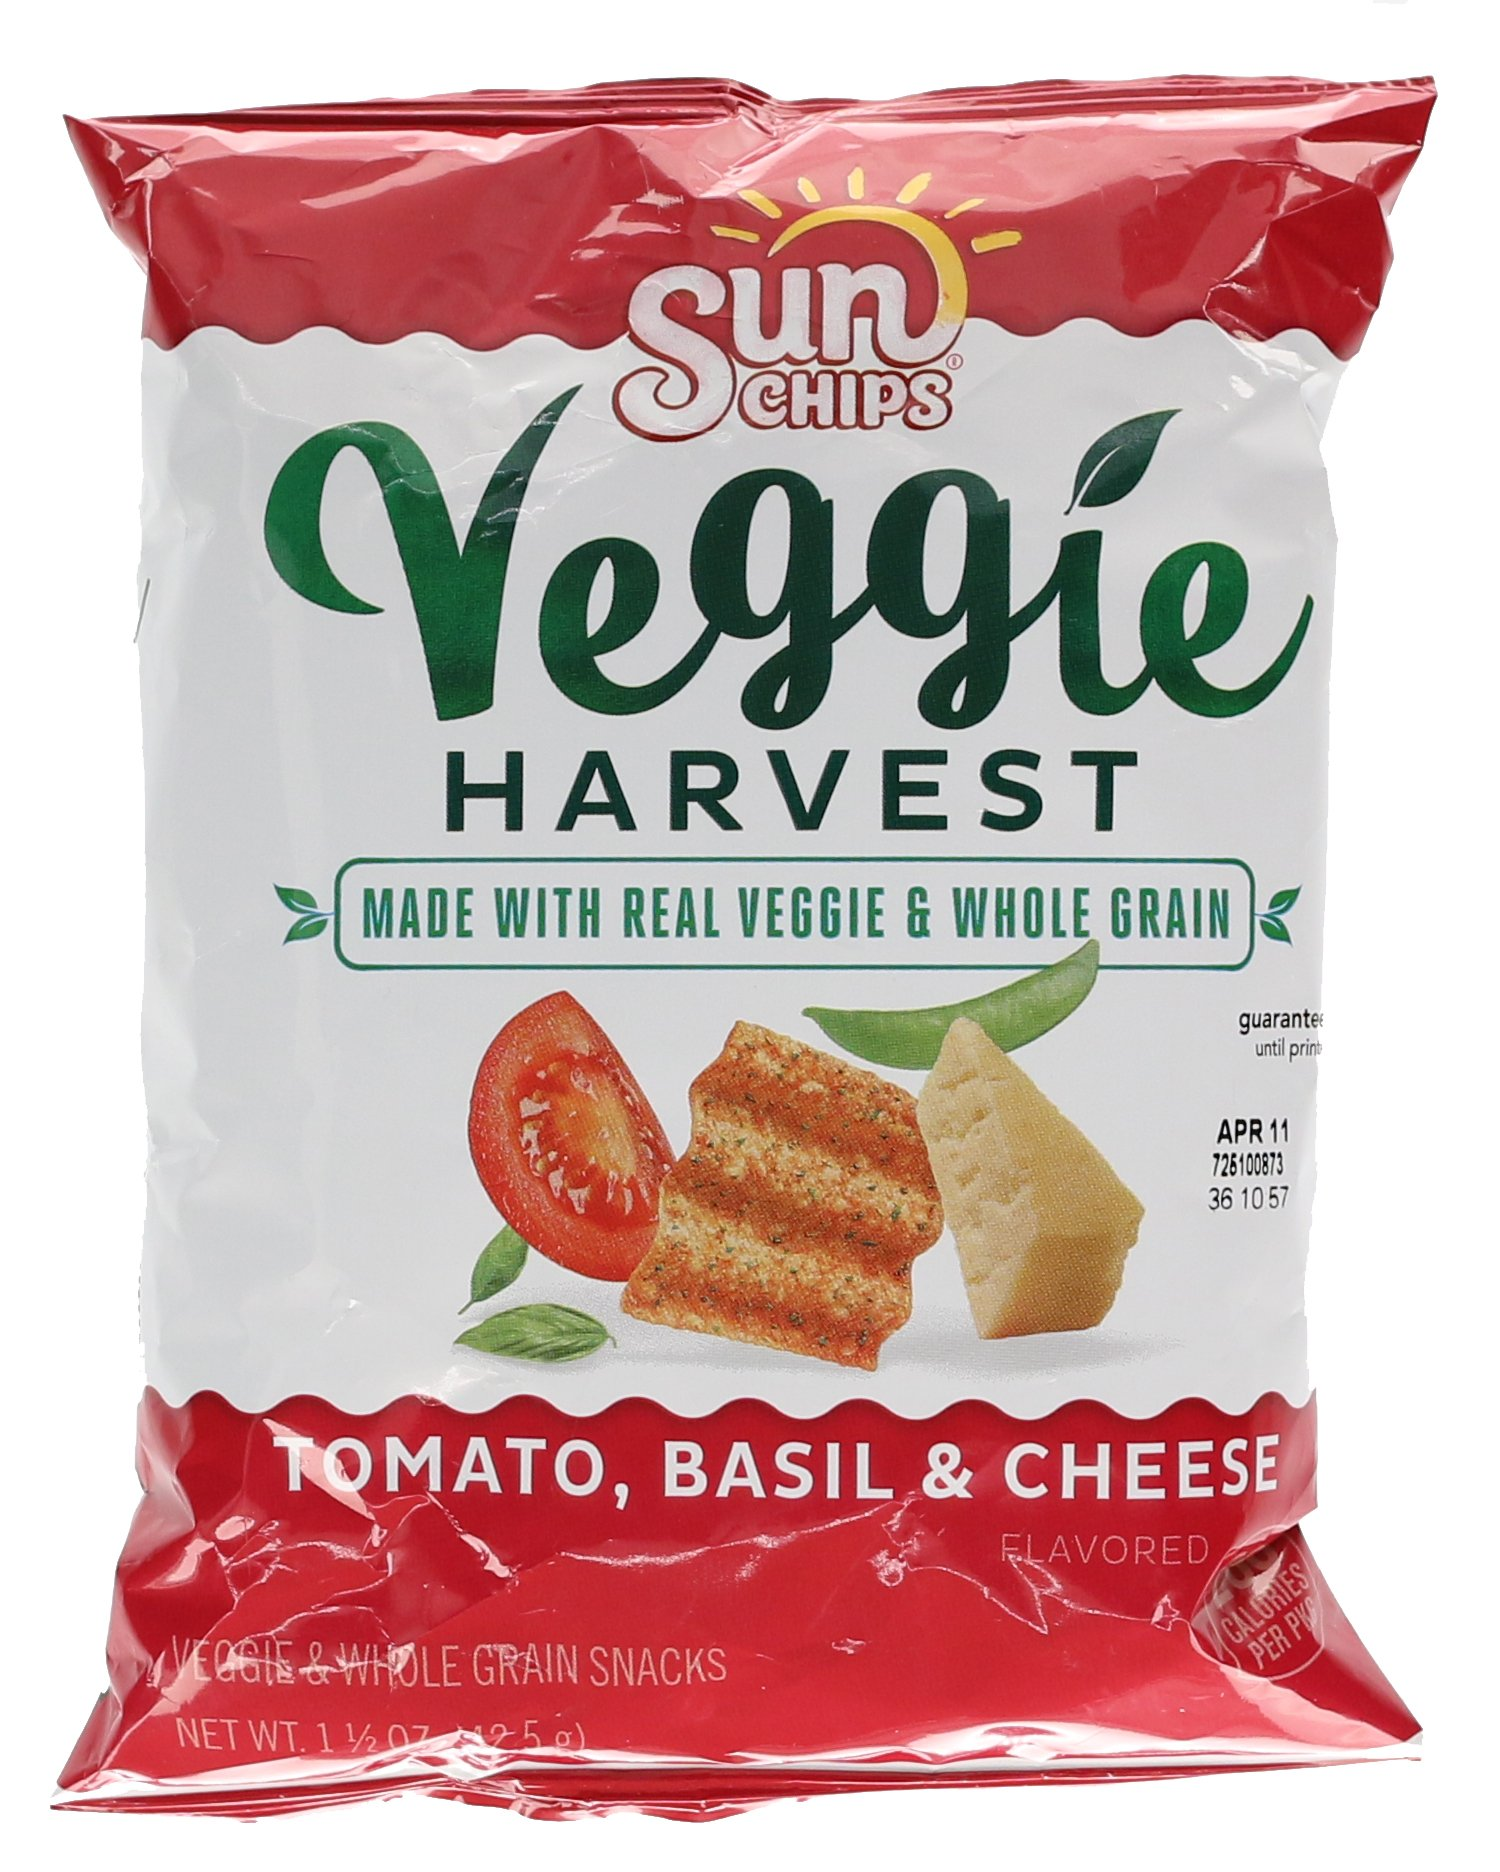 Sunchips Sunchips Veggie Chips, Tomato, Basil, and Cheese, 1.5 Ounce (Pack of 64), 96 Ounce